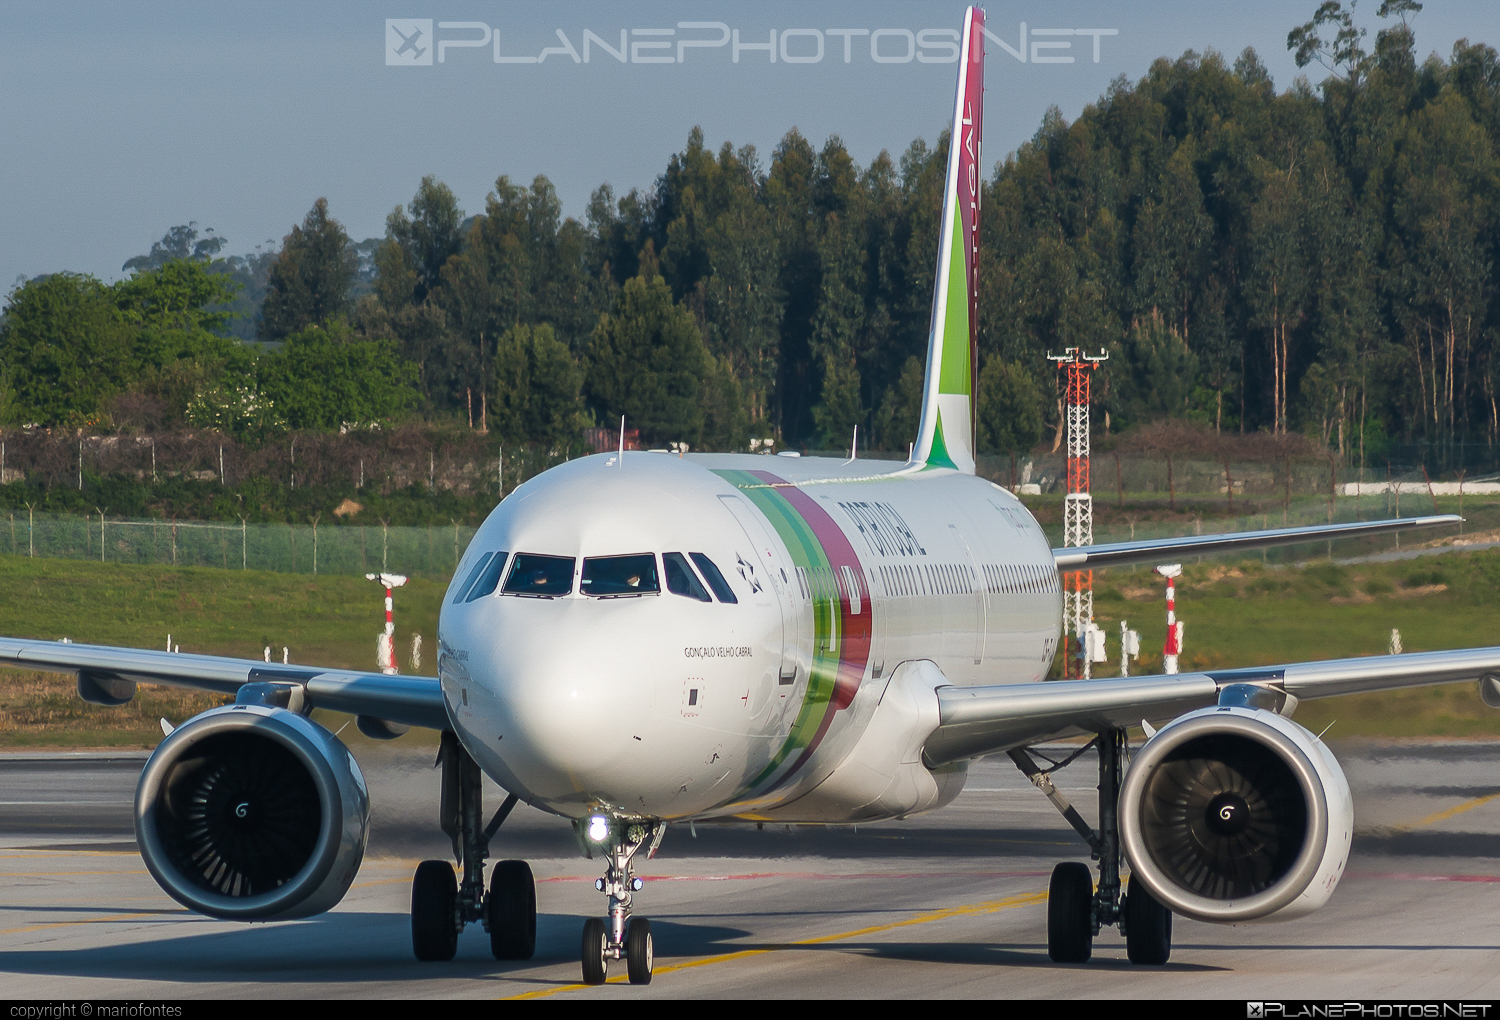 Airbus A321-251NX - CS-TJJ operated by TAP Portugal #a320family #a321 #a321neo #airbus #airbus321 #airbus321lr